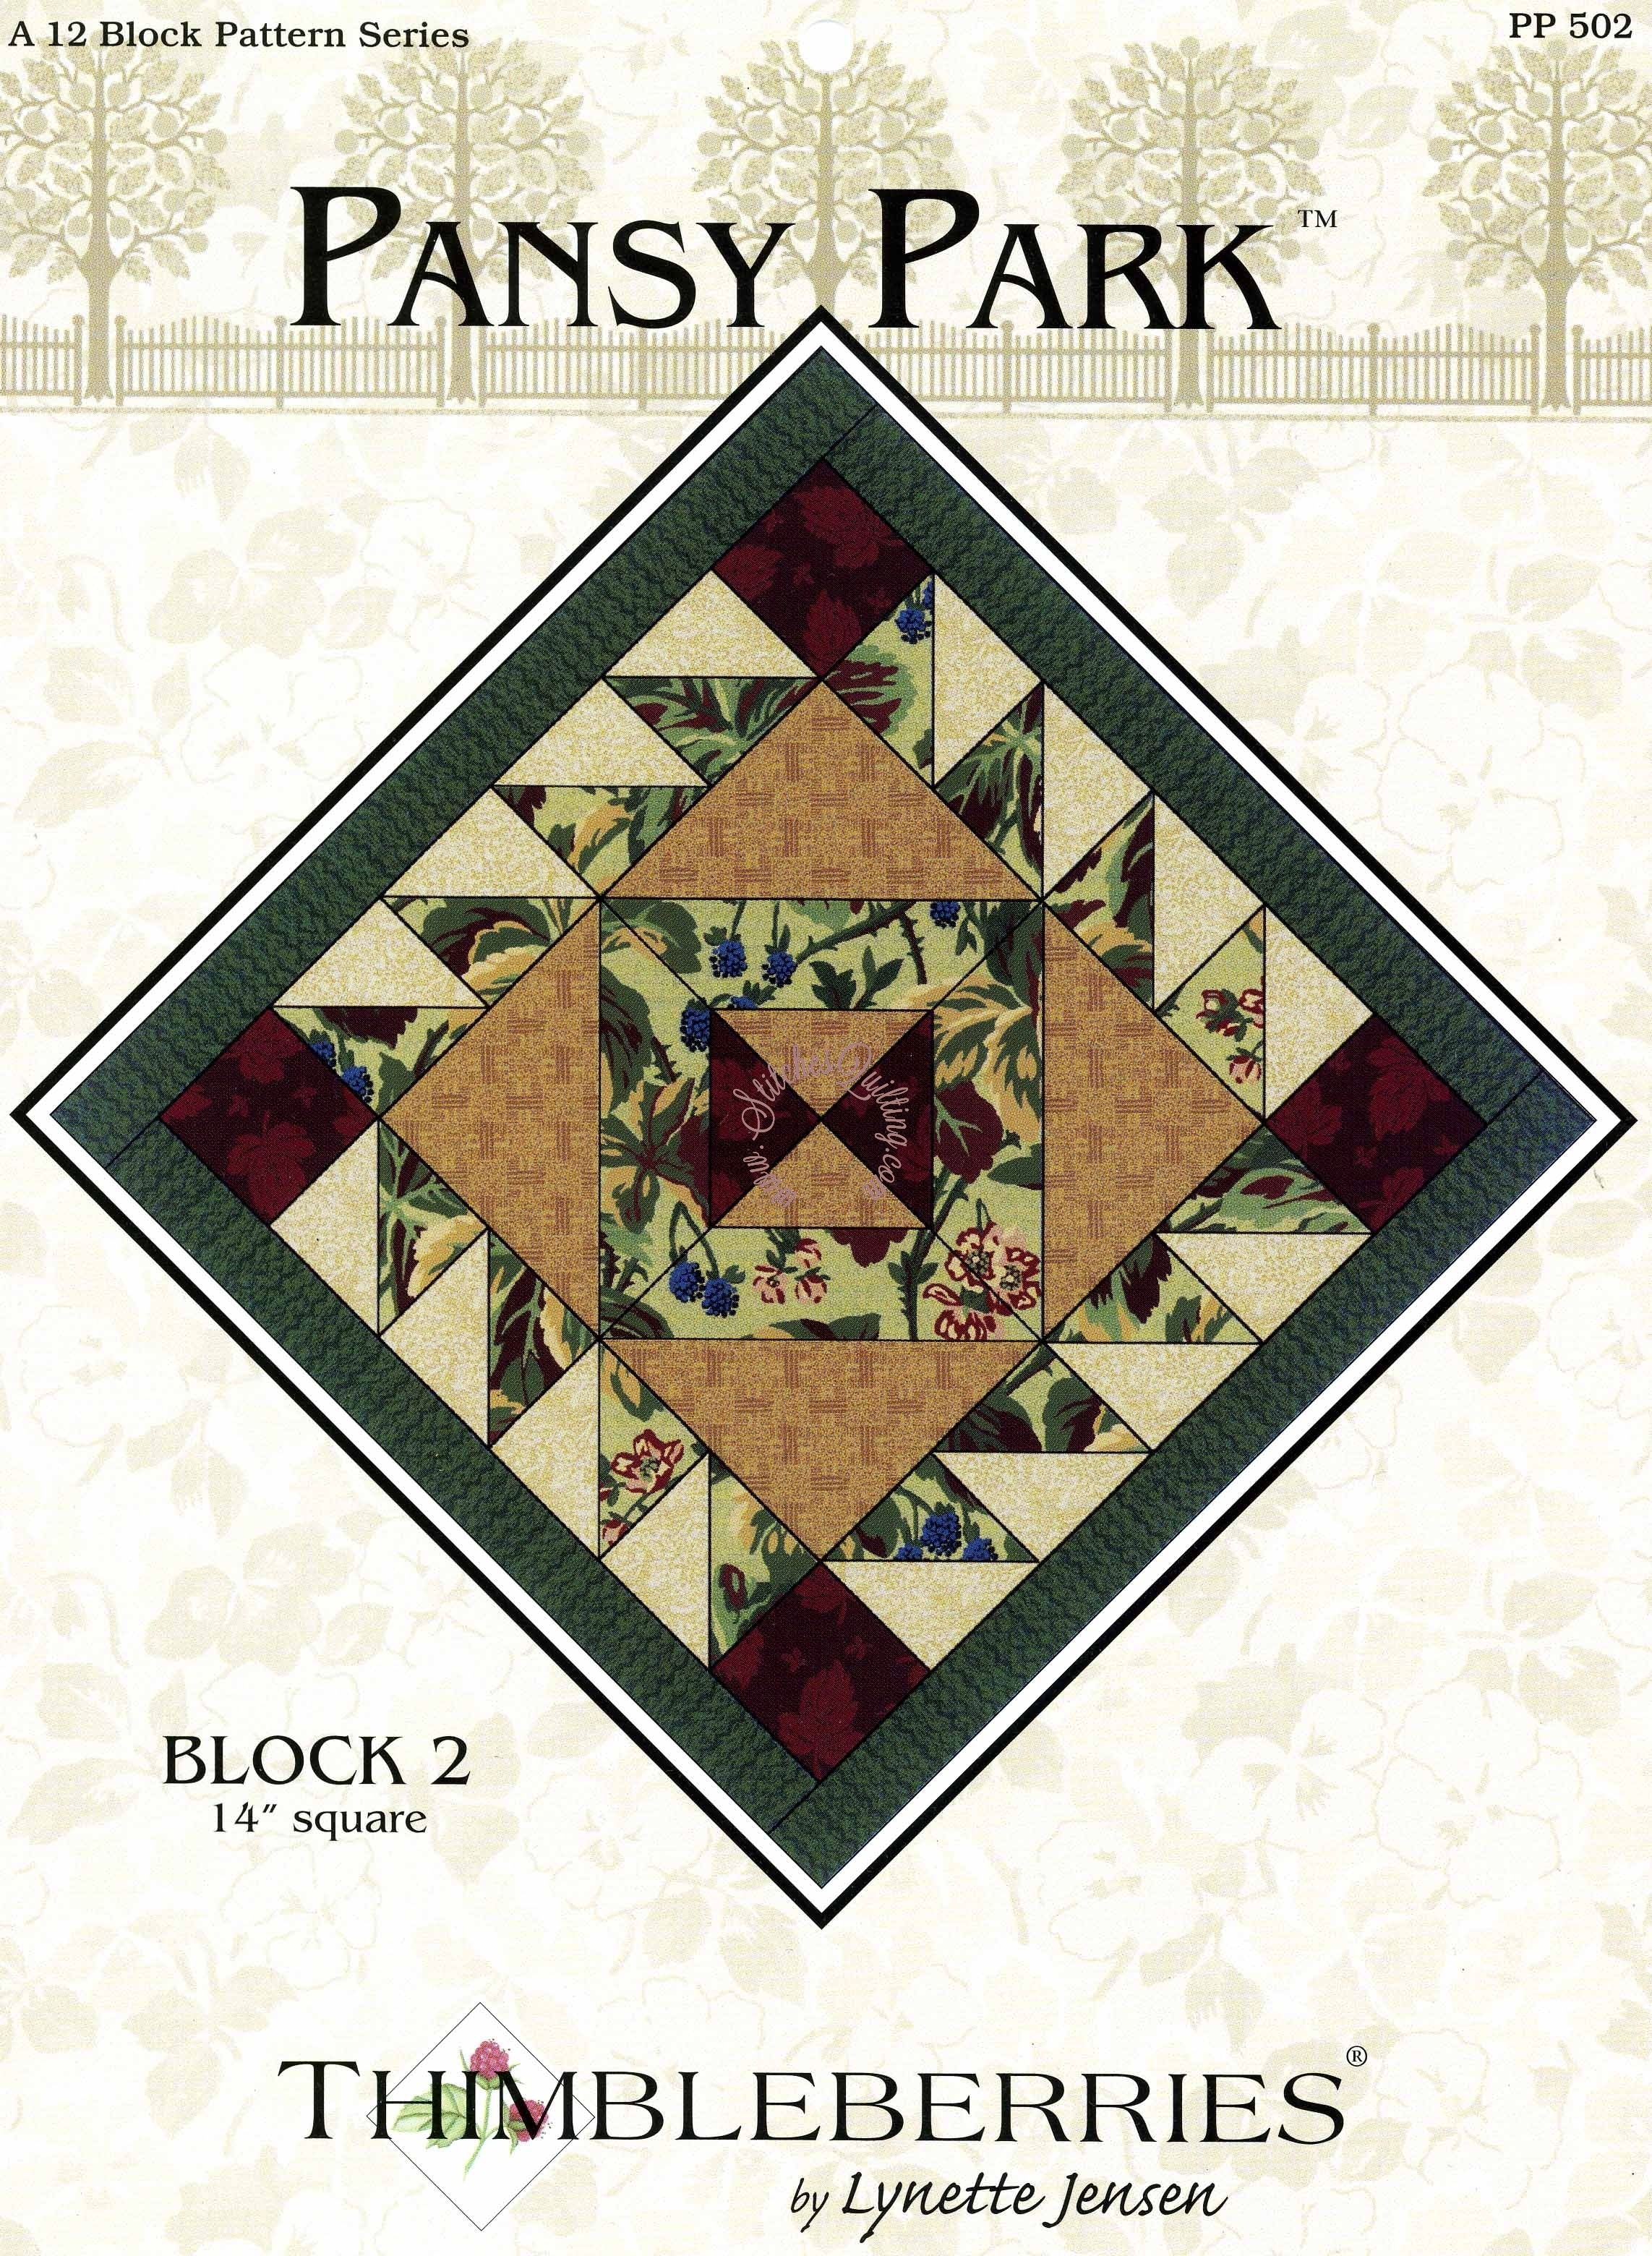 Thimbleberries Pansy Park Pattern Block 2 Stitches Quilting